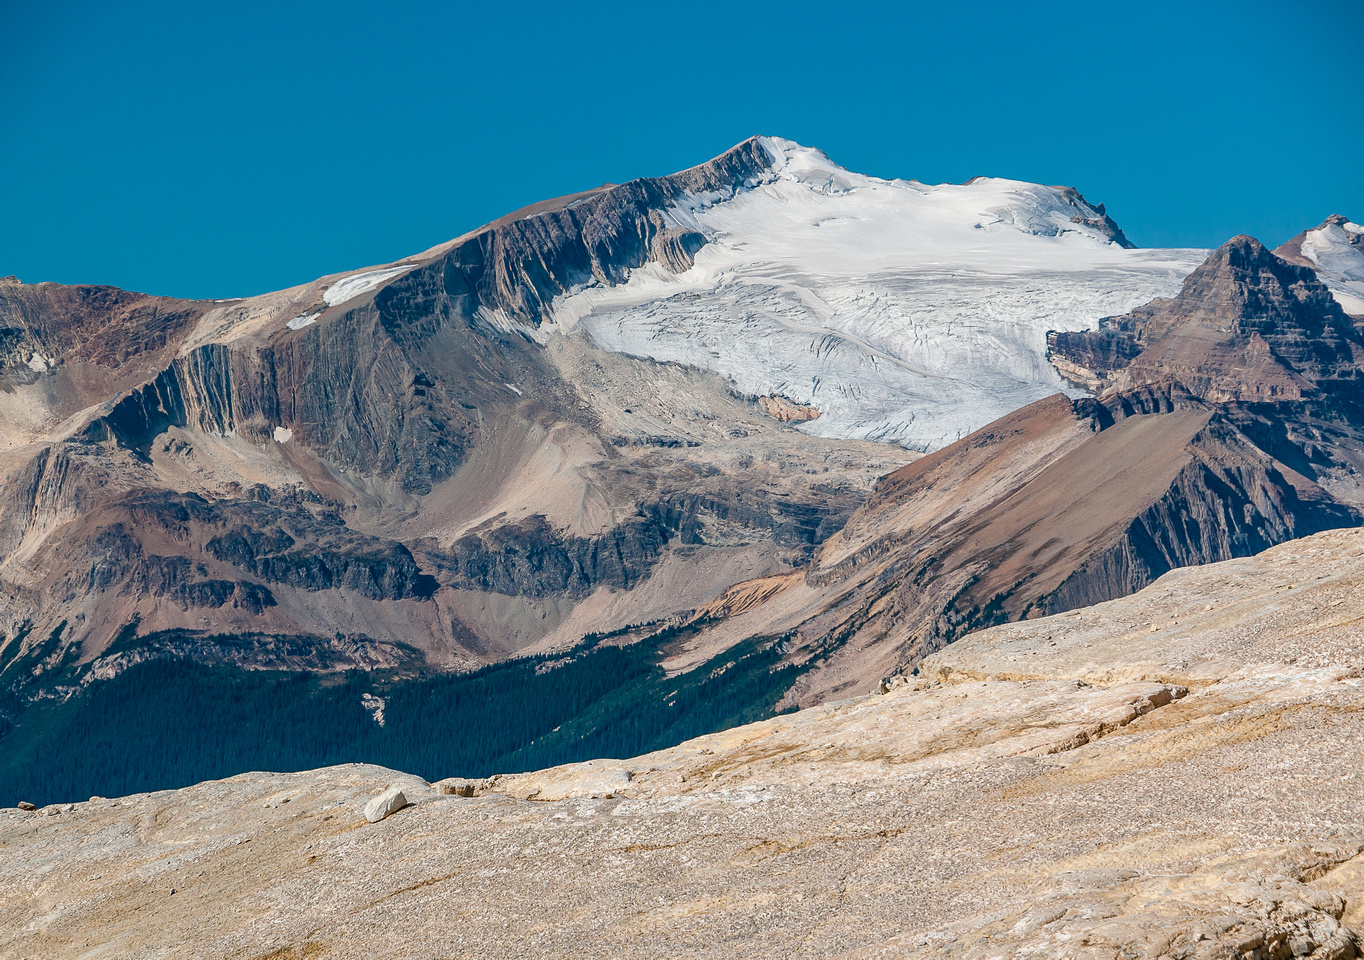 Mount McArthur with Isolated to the right and the Whaleback Ridge in front.